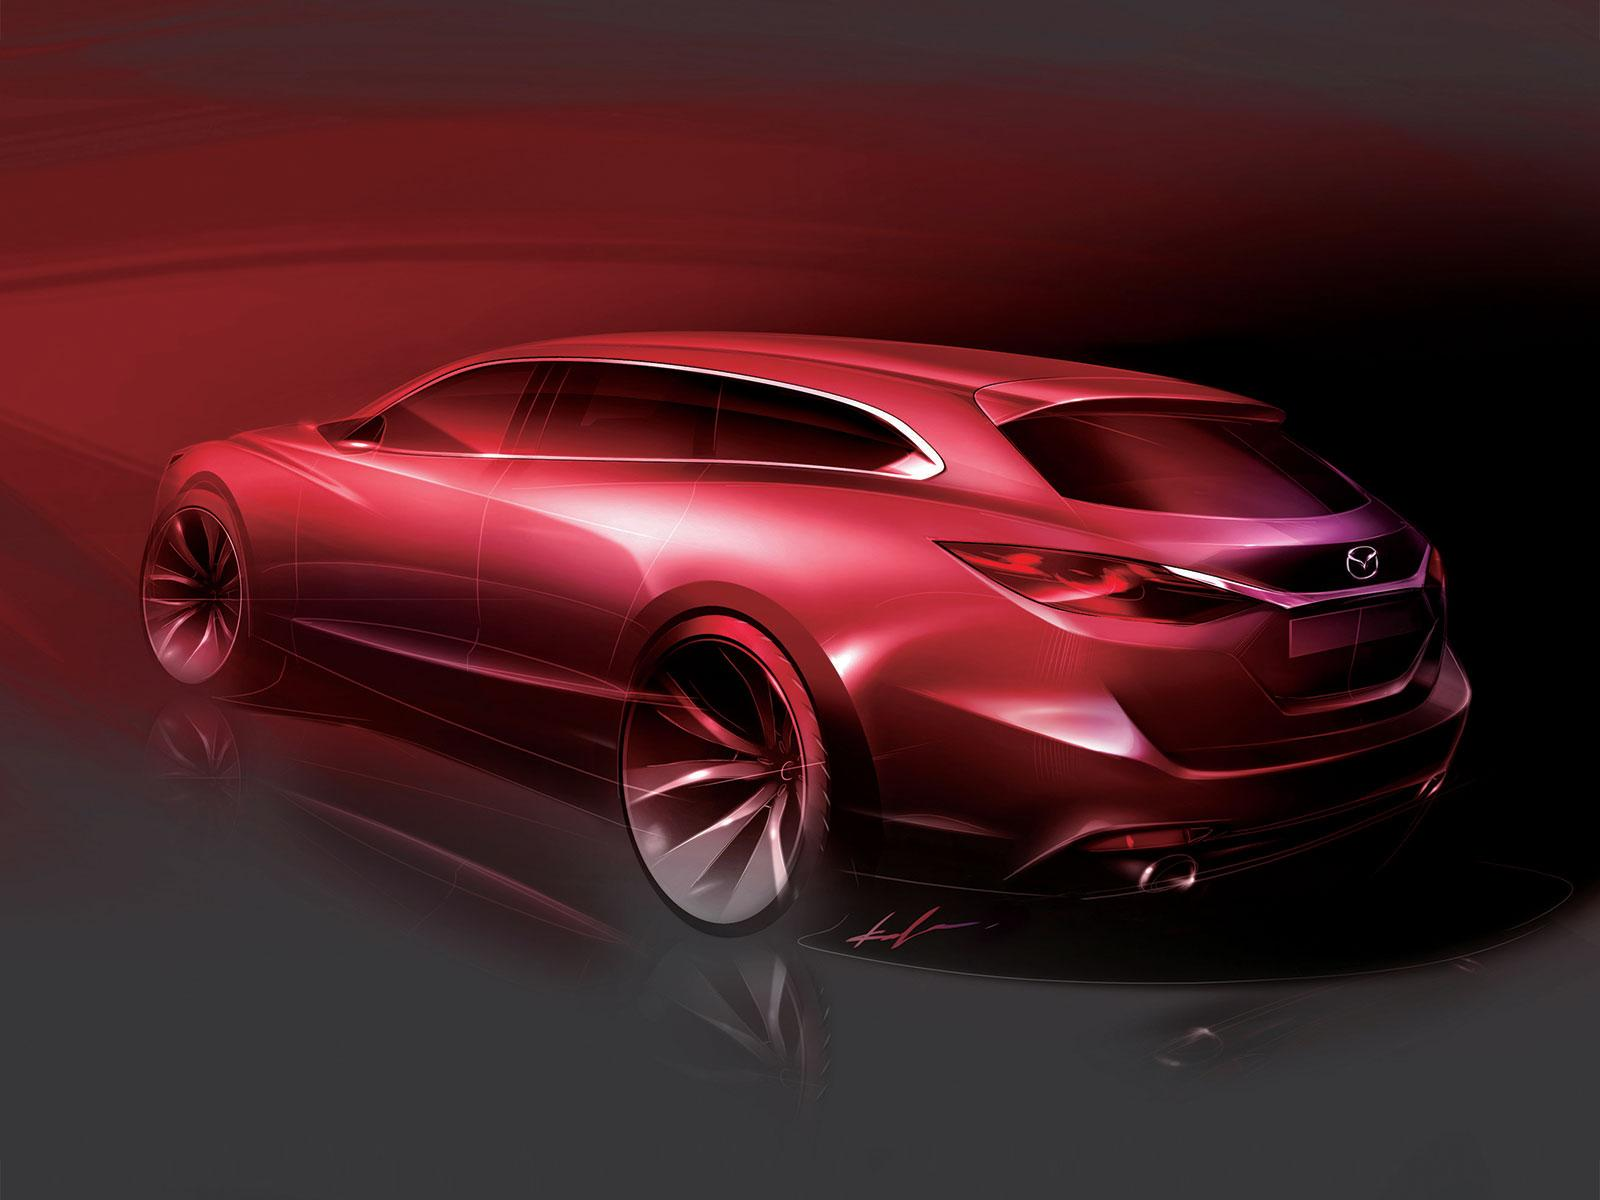 Mazda6 Wagon Design Sketch - Car Body Design